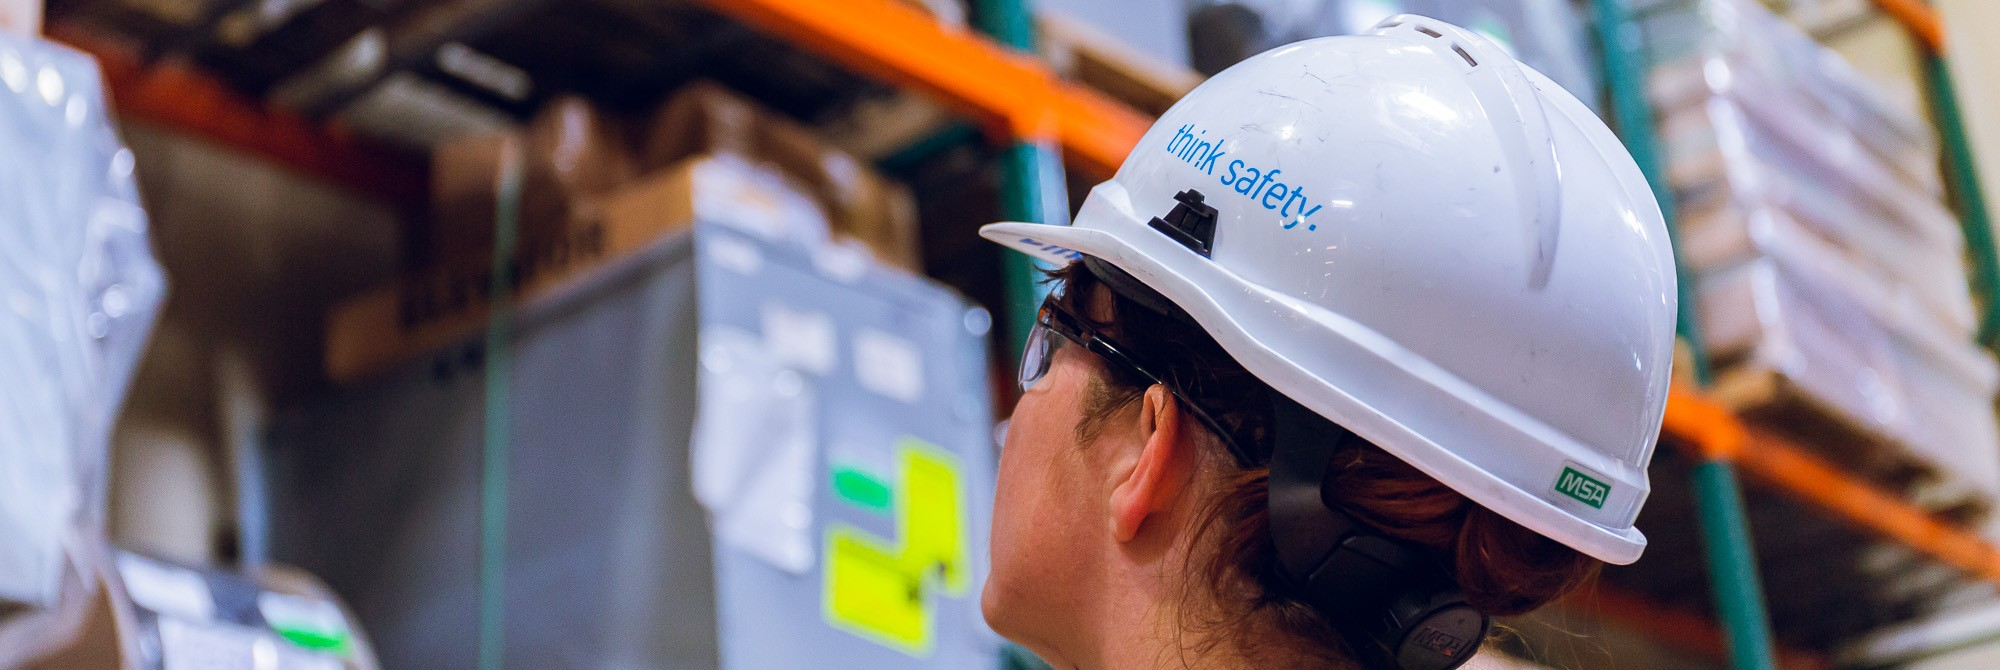 thyssenkrupp supply chain services resources